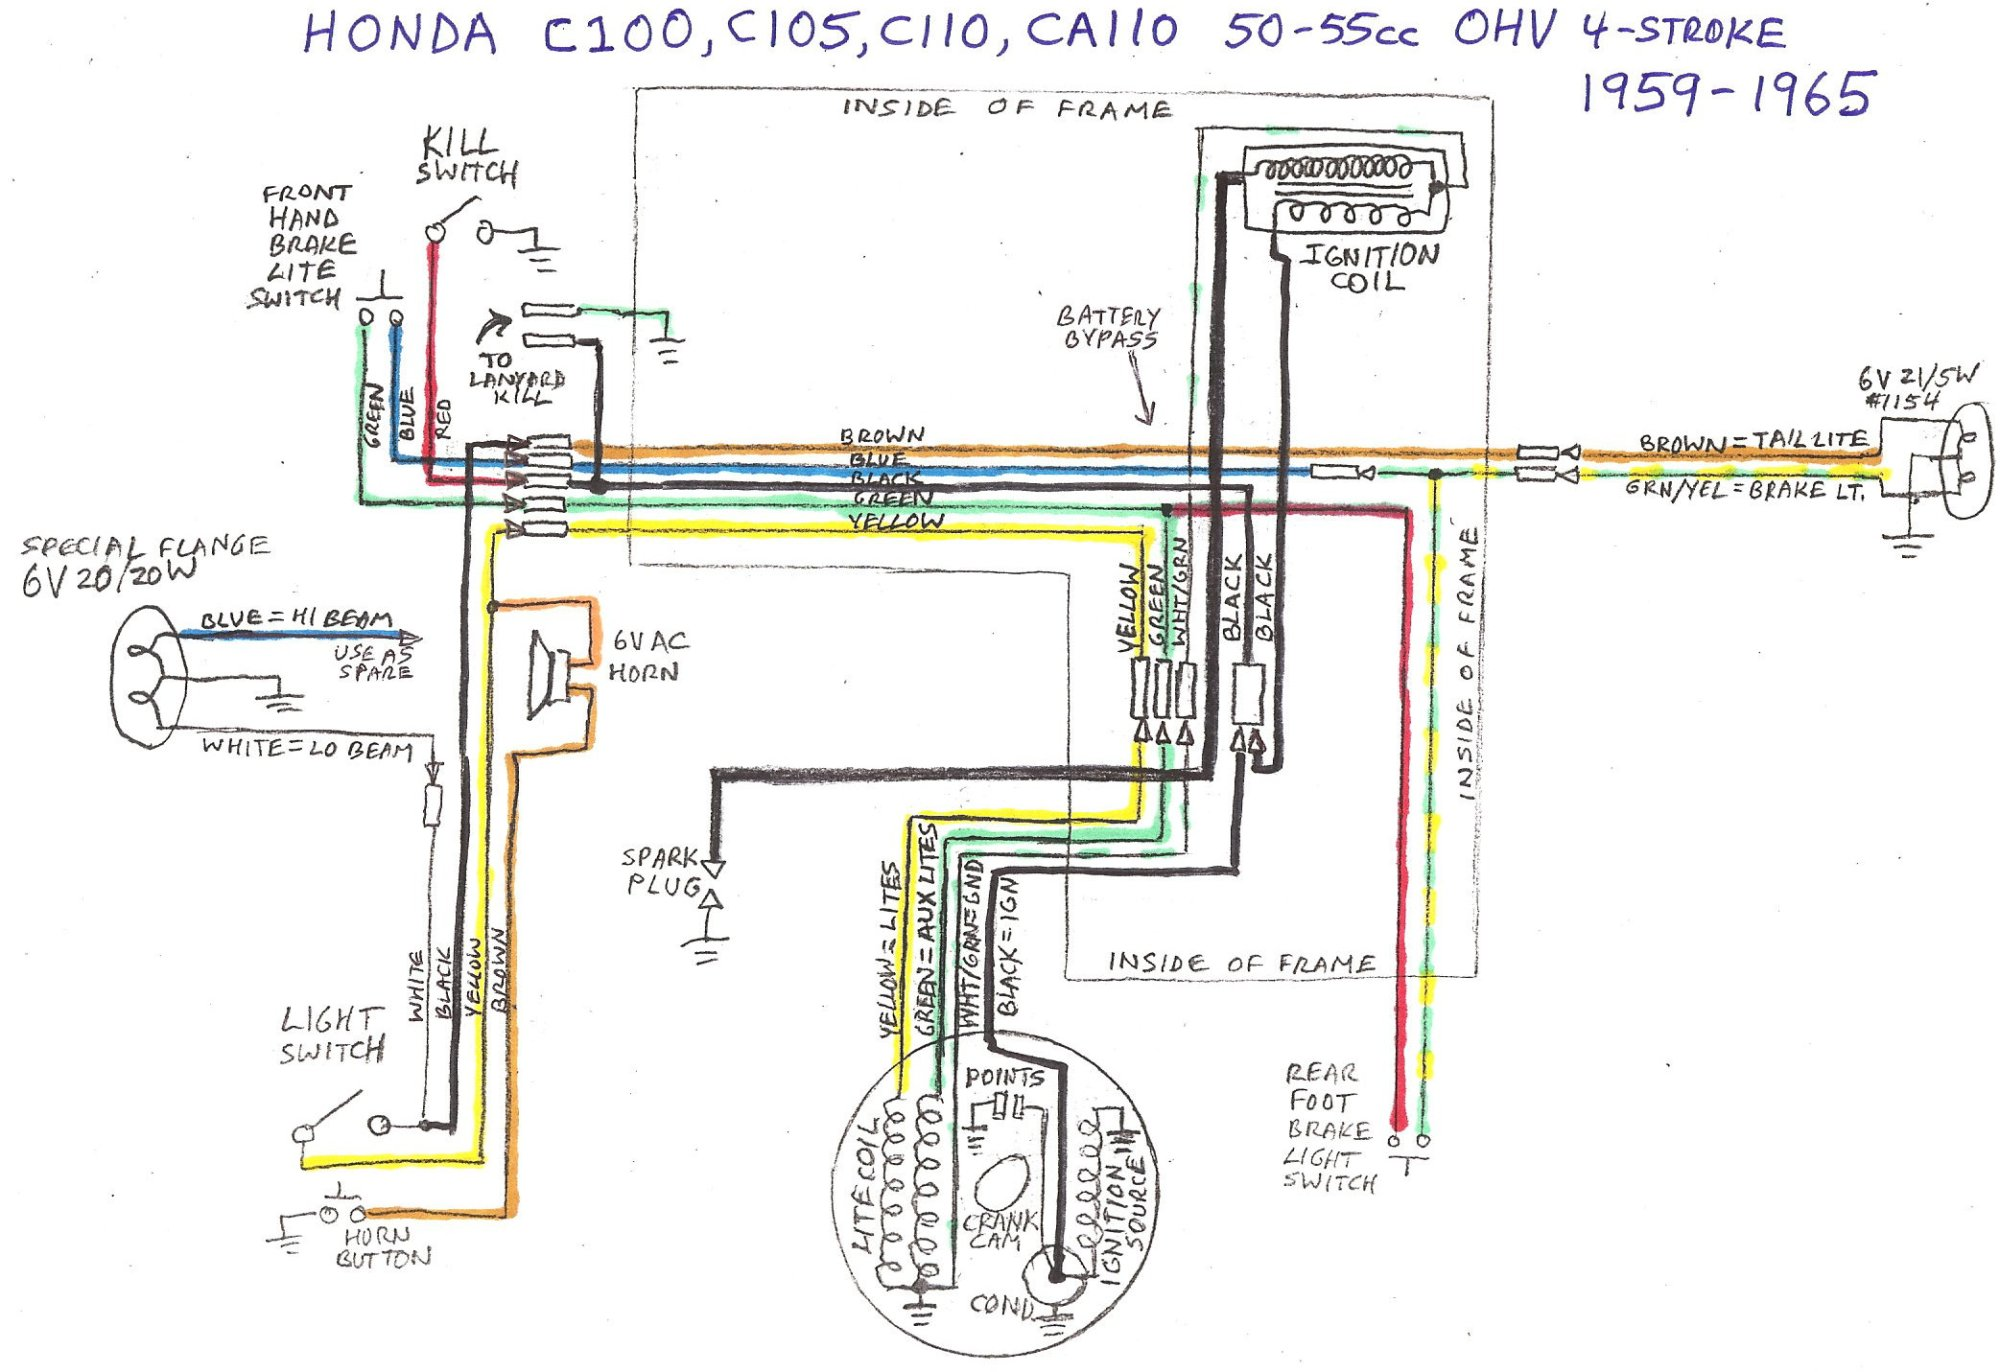 hight resolution of honda 50 wiring diagram wiring diagram portal 3165 cub cadet wiring diagram honda cdi wiring diagram